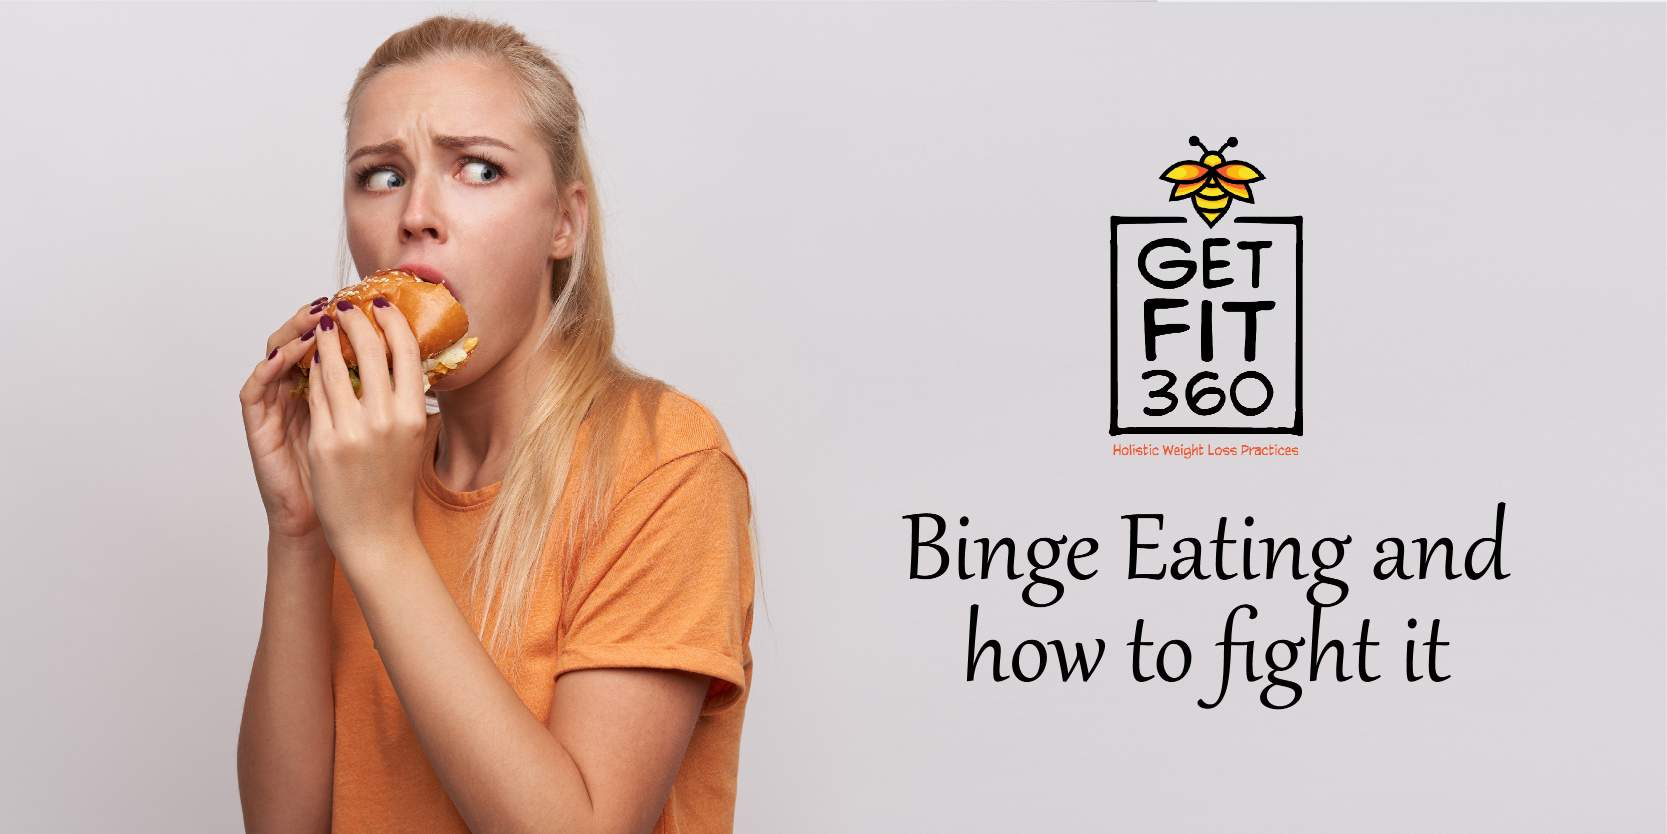 Picture depicting a girl eating a burger secretly and suffering from binge eating disorder